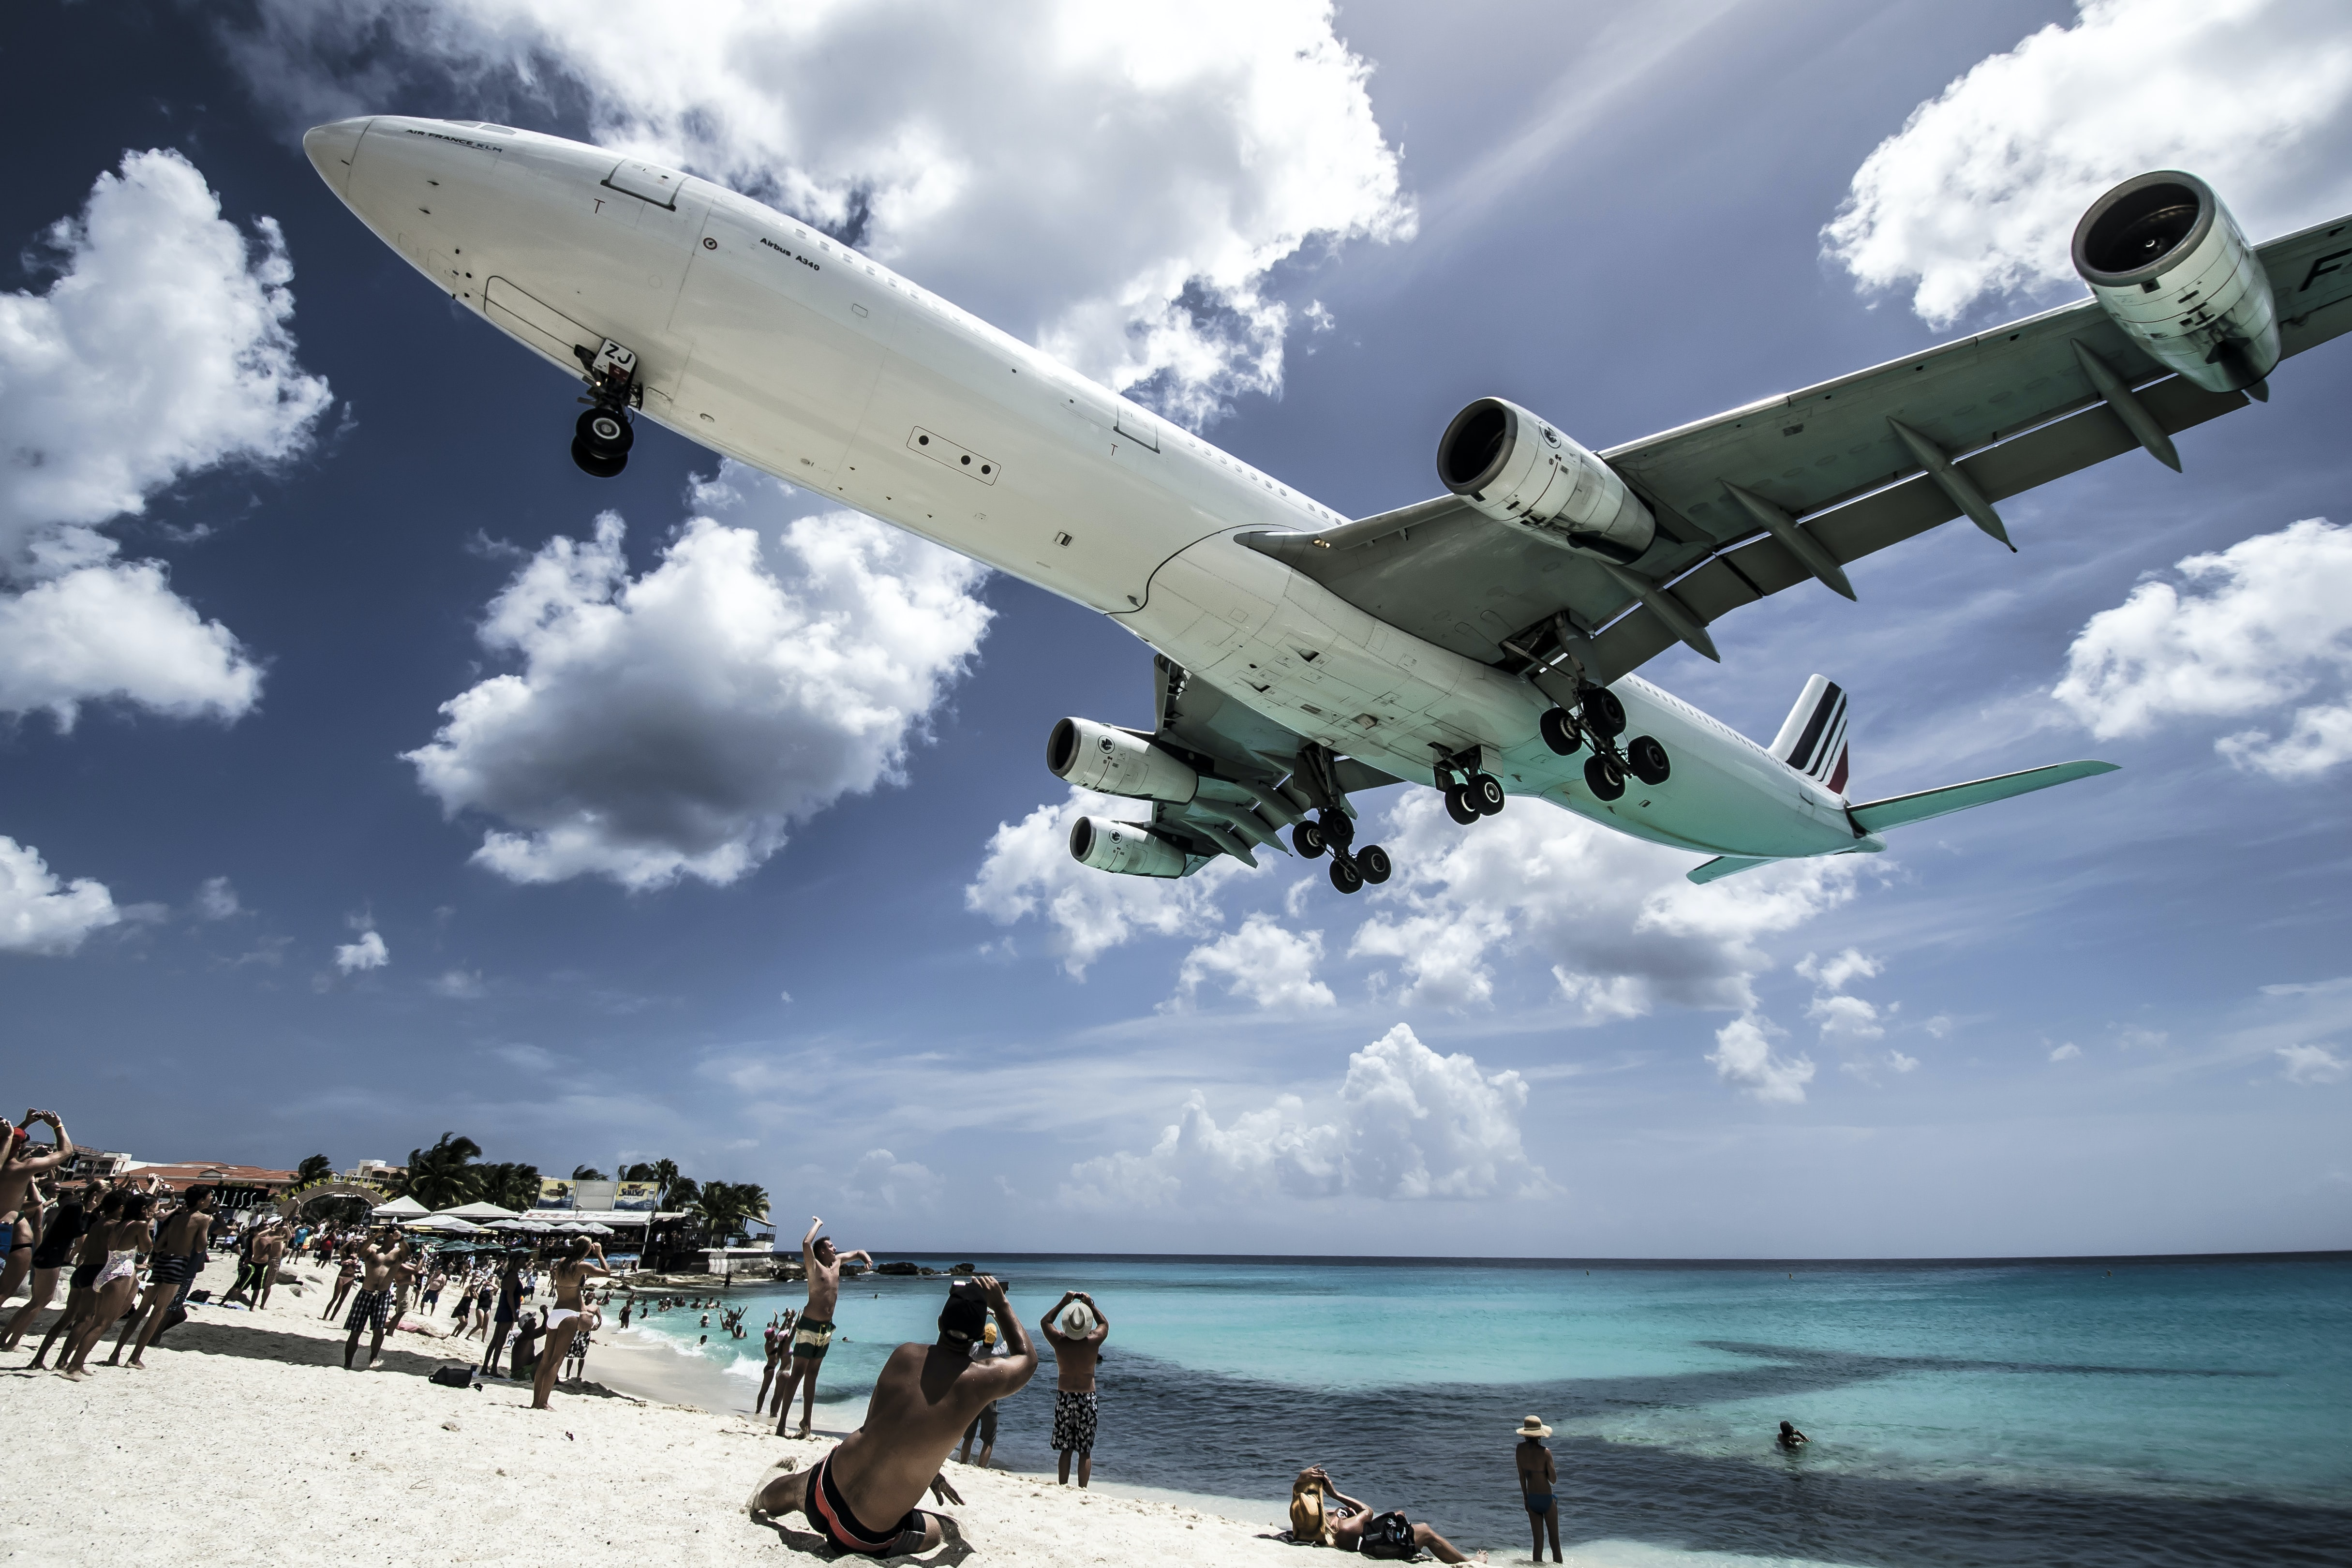 white airplane passing the people at the beach during daytime